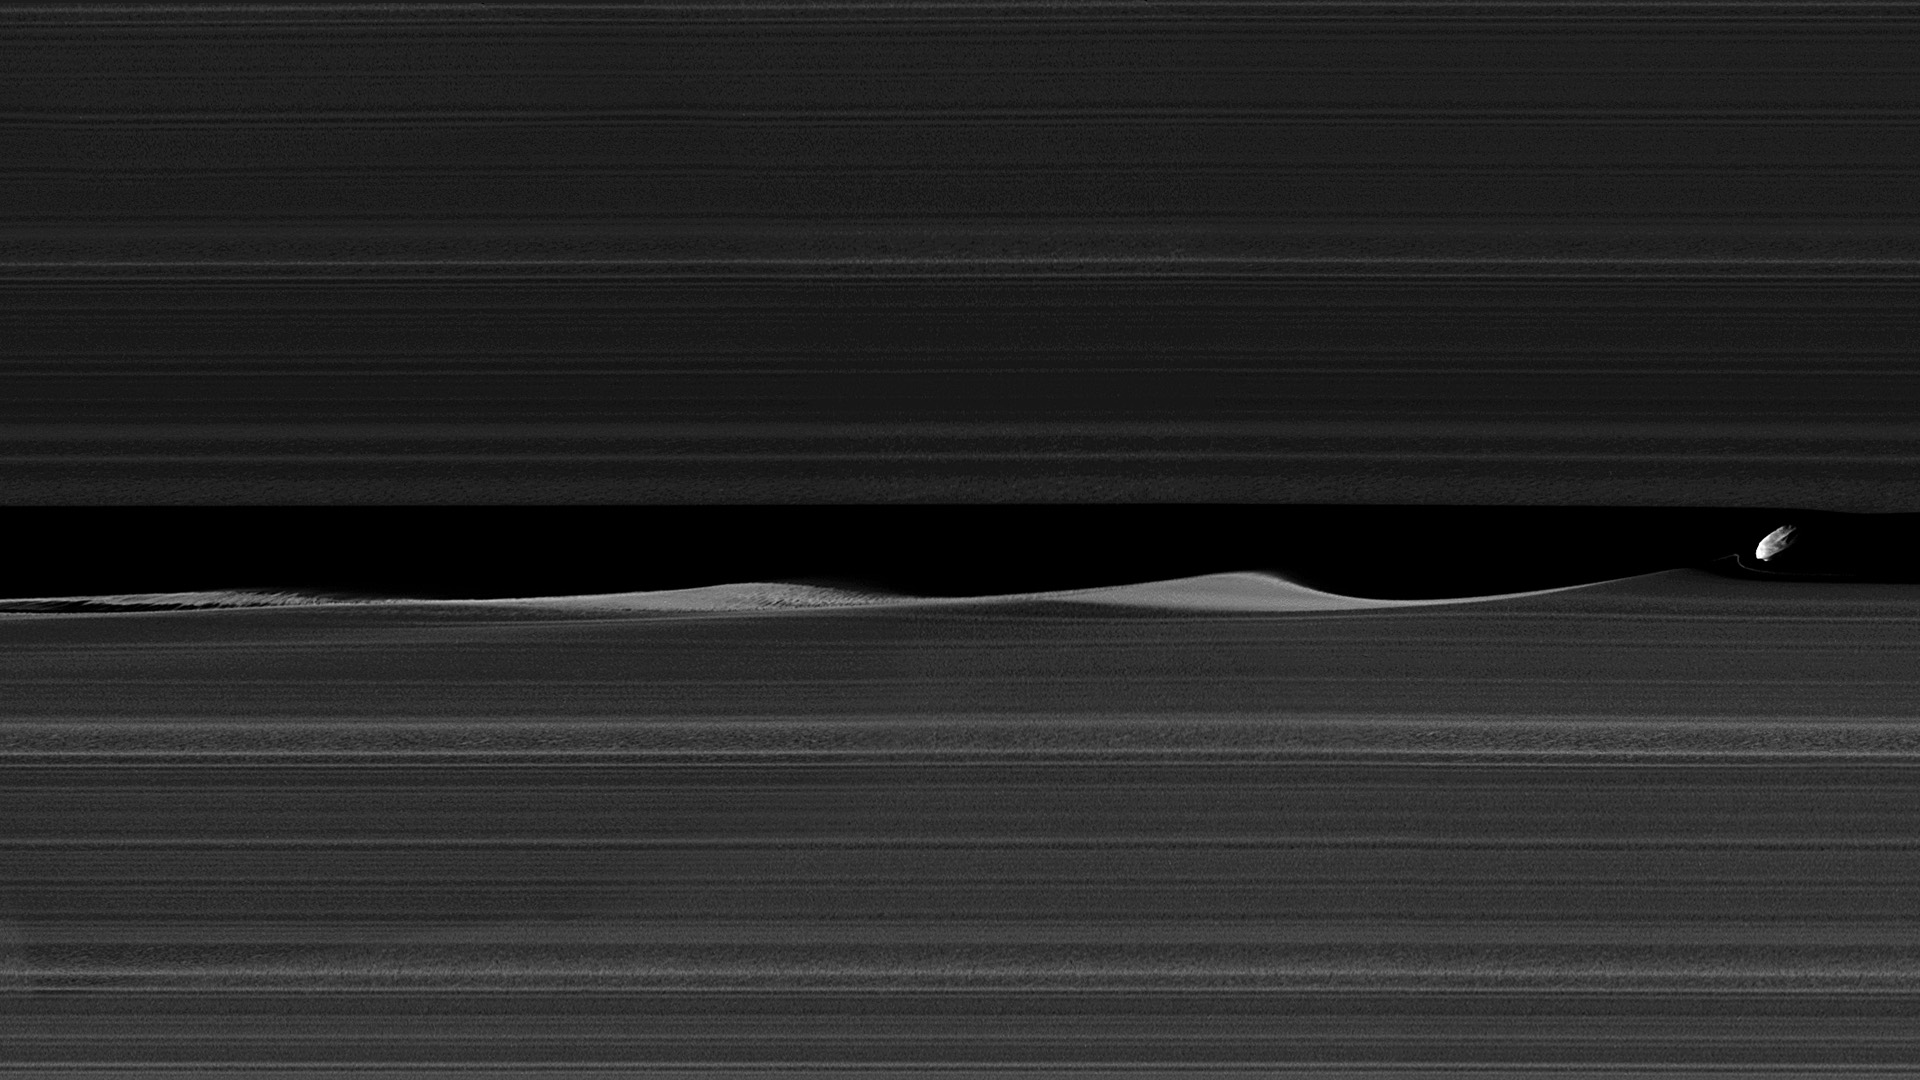 Daphnis, one of Saturn's ring-embedded moons